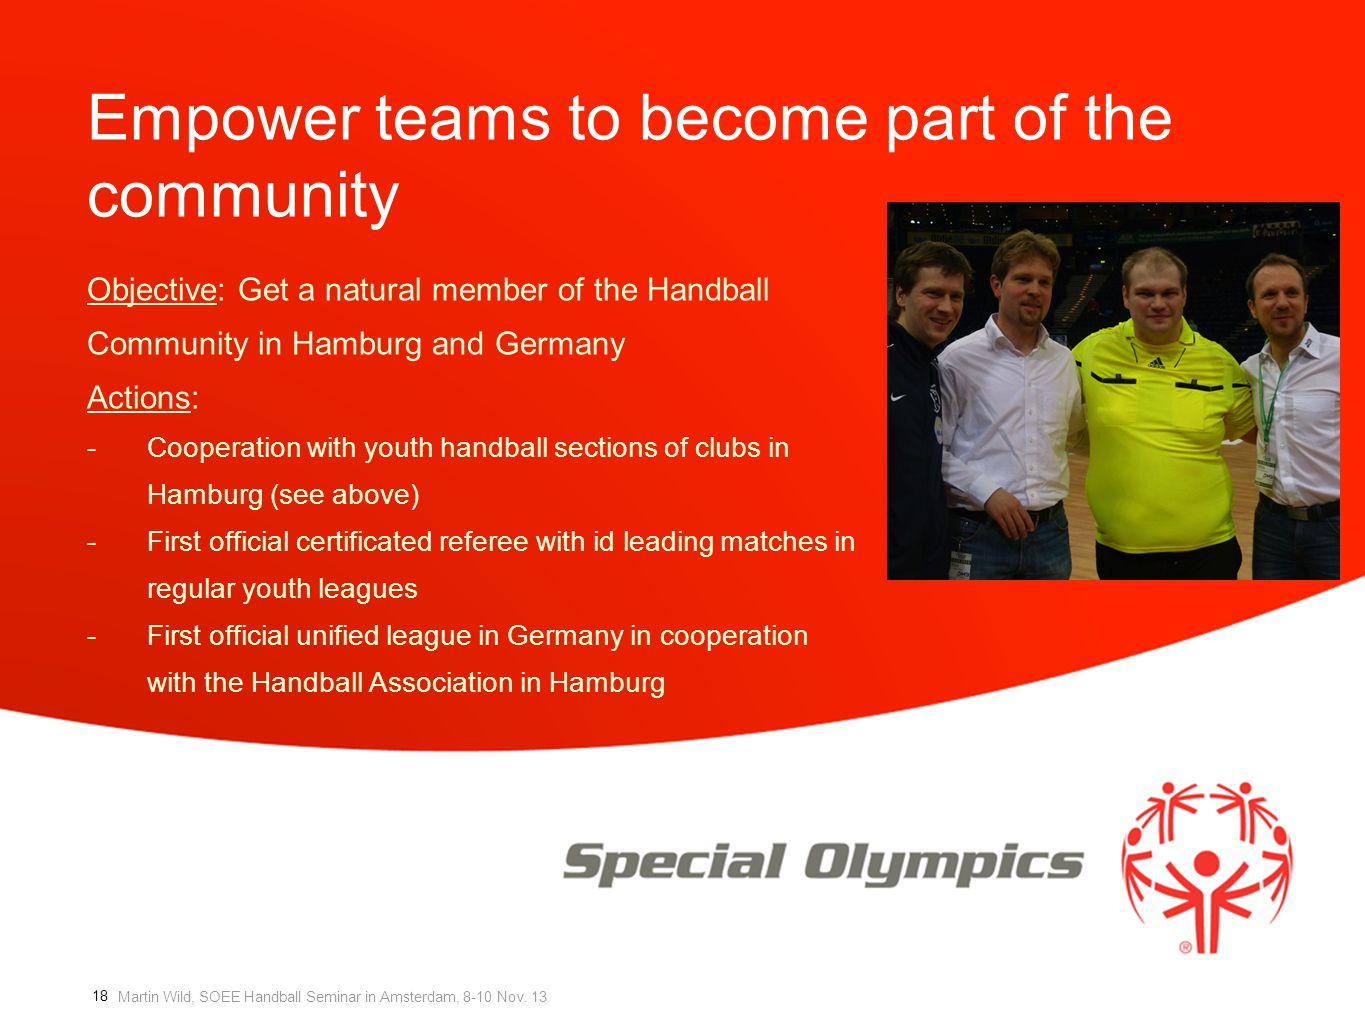 Empower teams to become part of the community